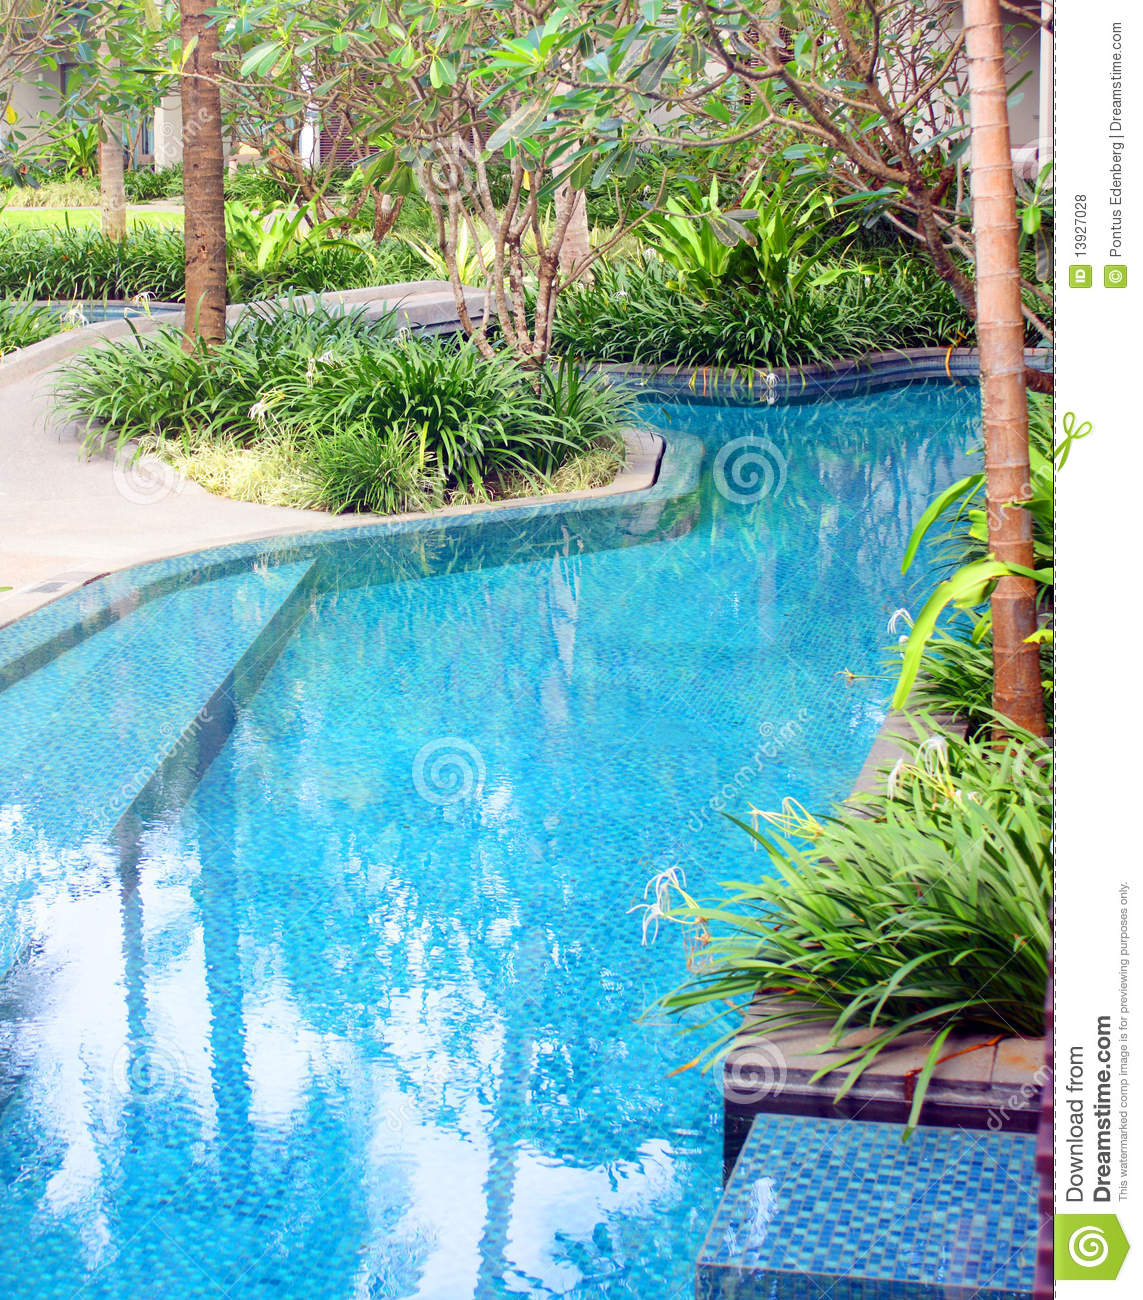 Swimming pool edge royalty free stock photos image 13927028 for Pool garden edging